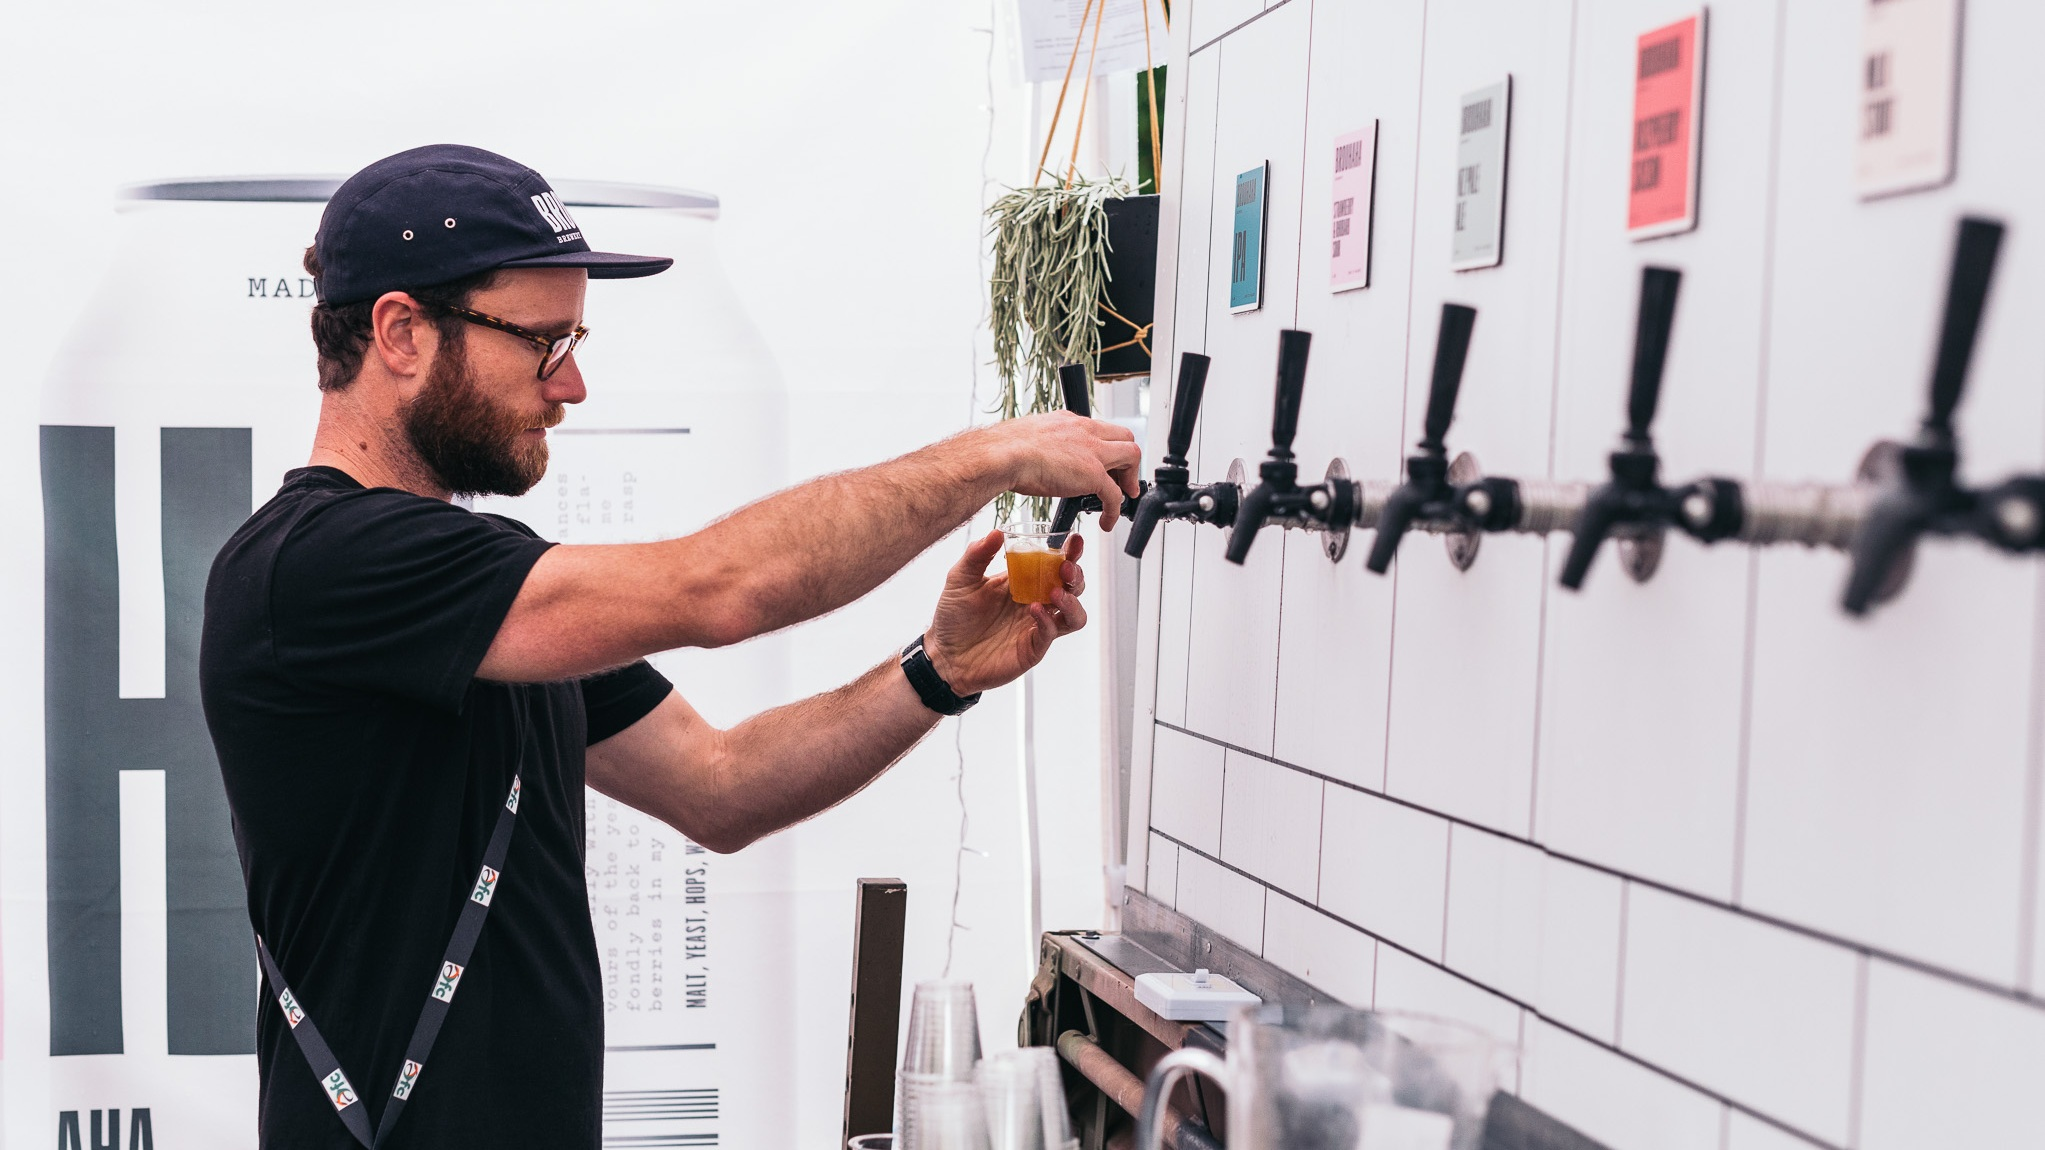 Ready, set, beer! - Sample some of the 200+ brews on offer from 40 of the best craft brewers from around the country (and a few from overseas thrown in for good measure!).